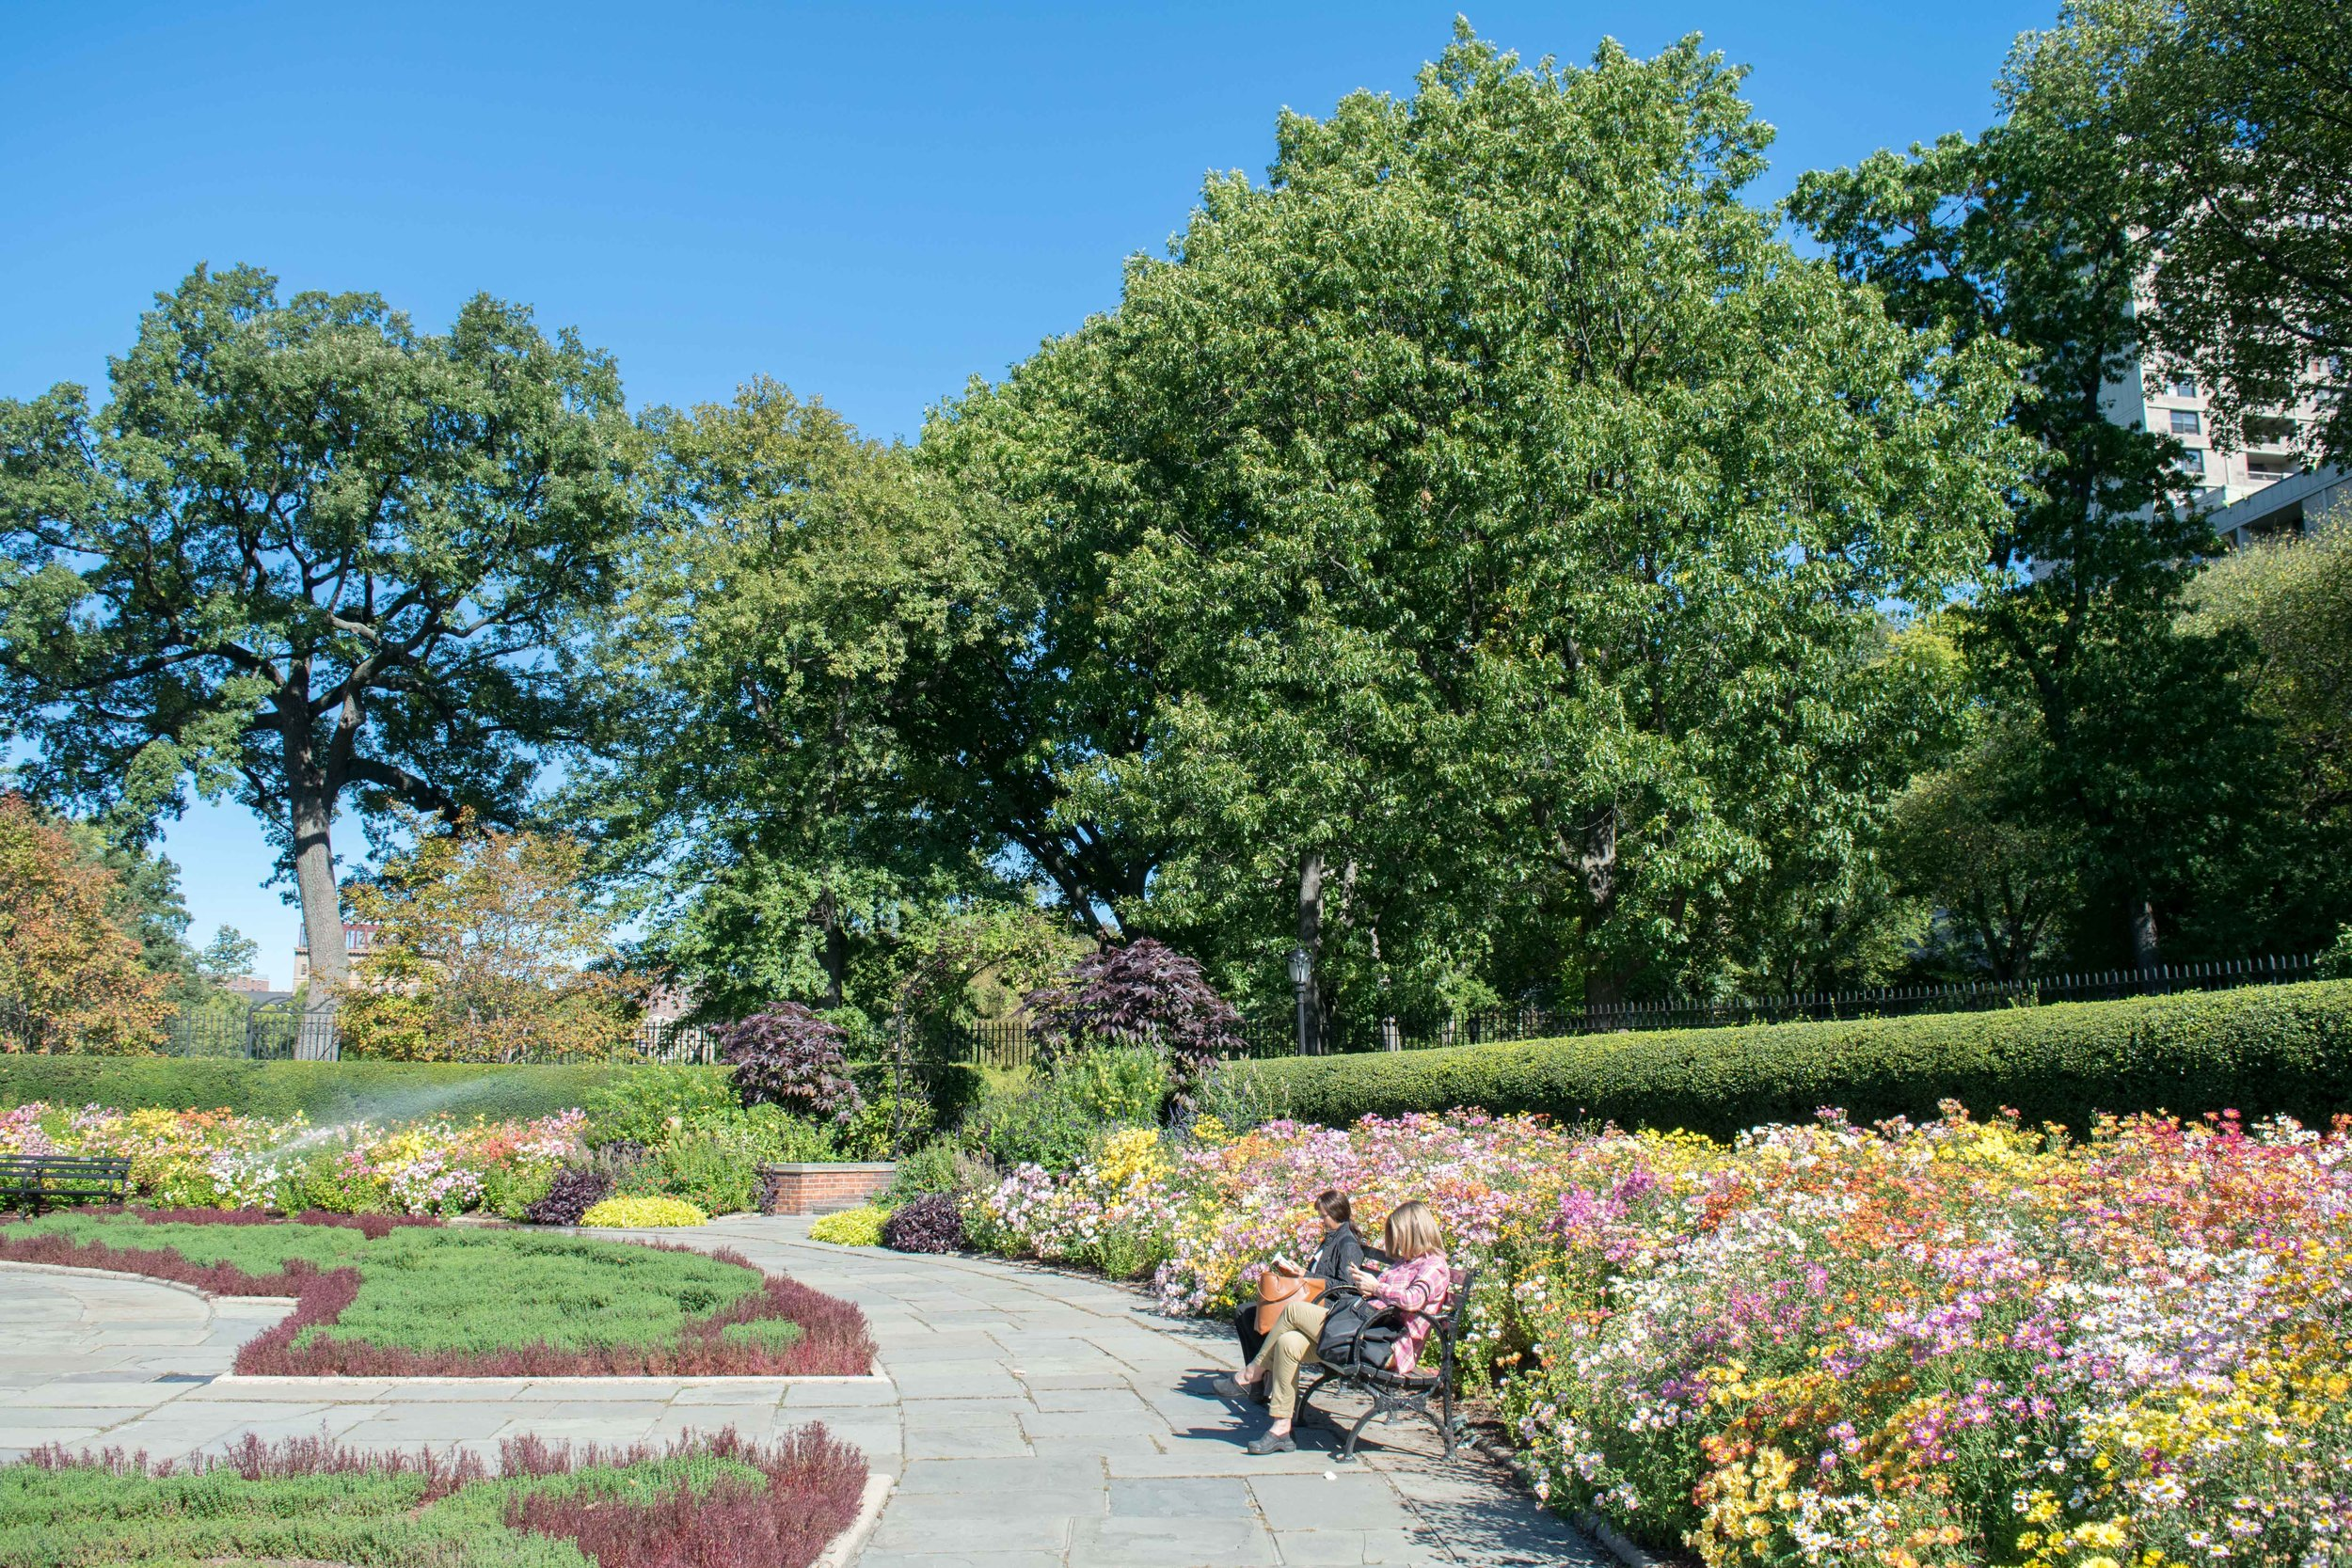 Flowers blooming in Conservatory Garden